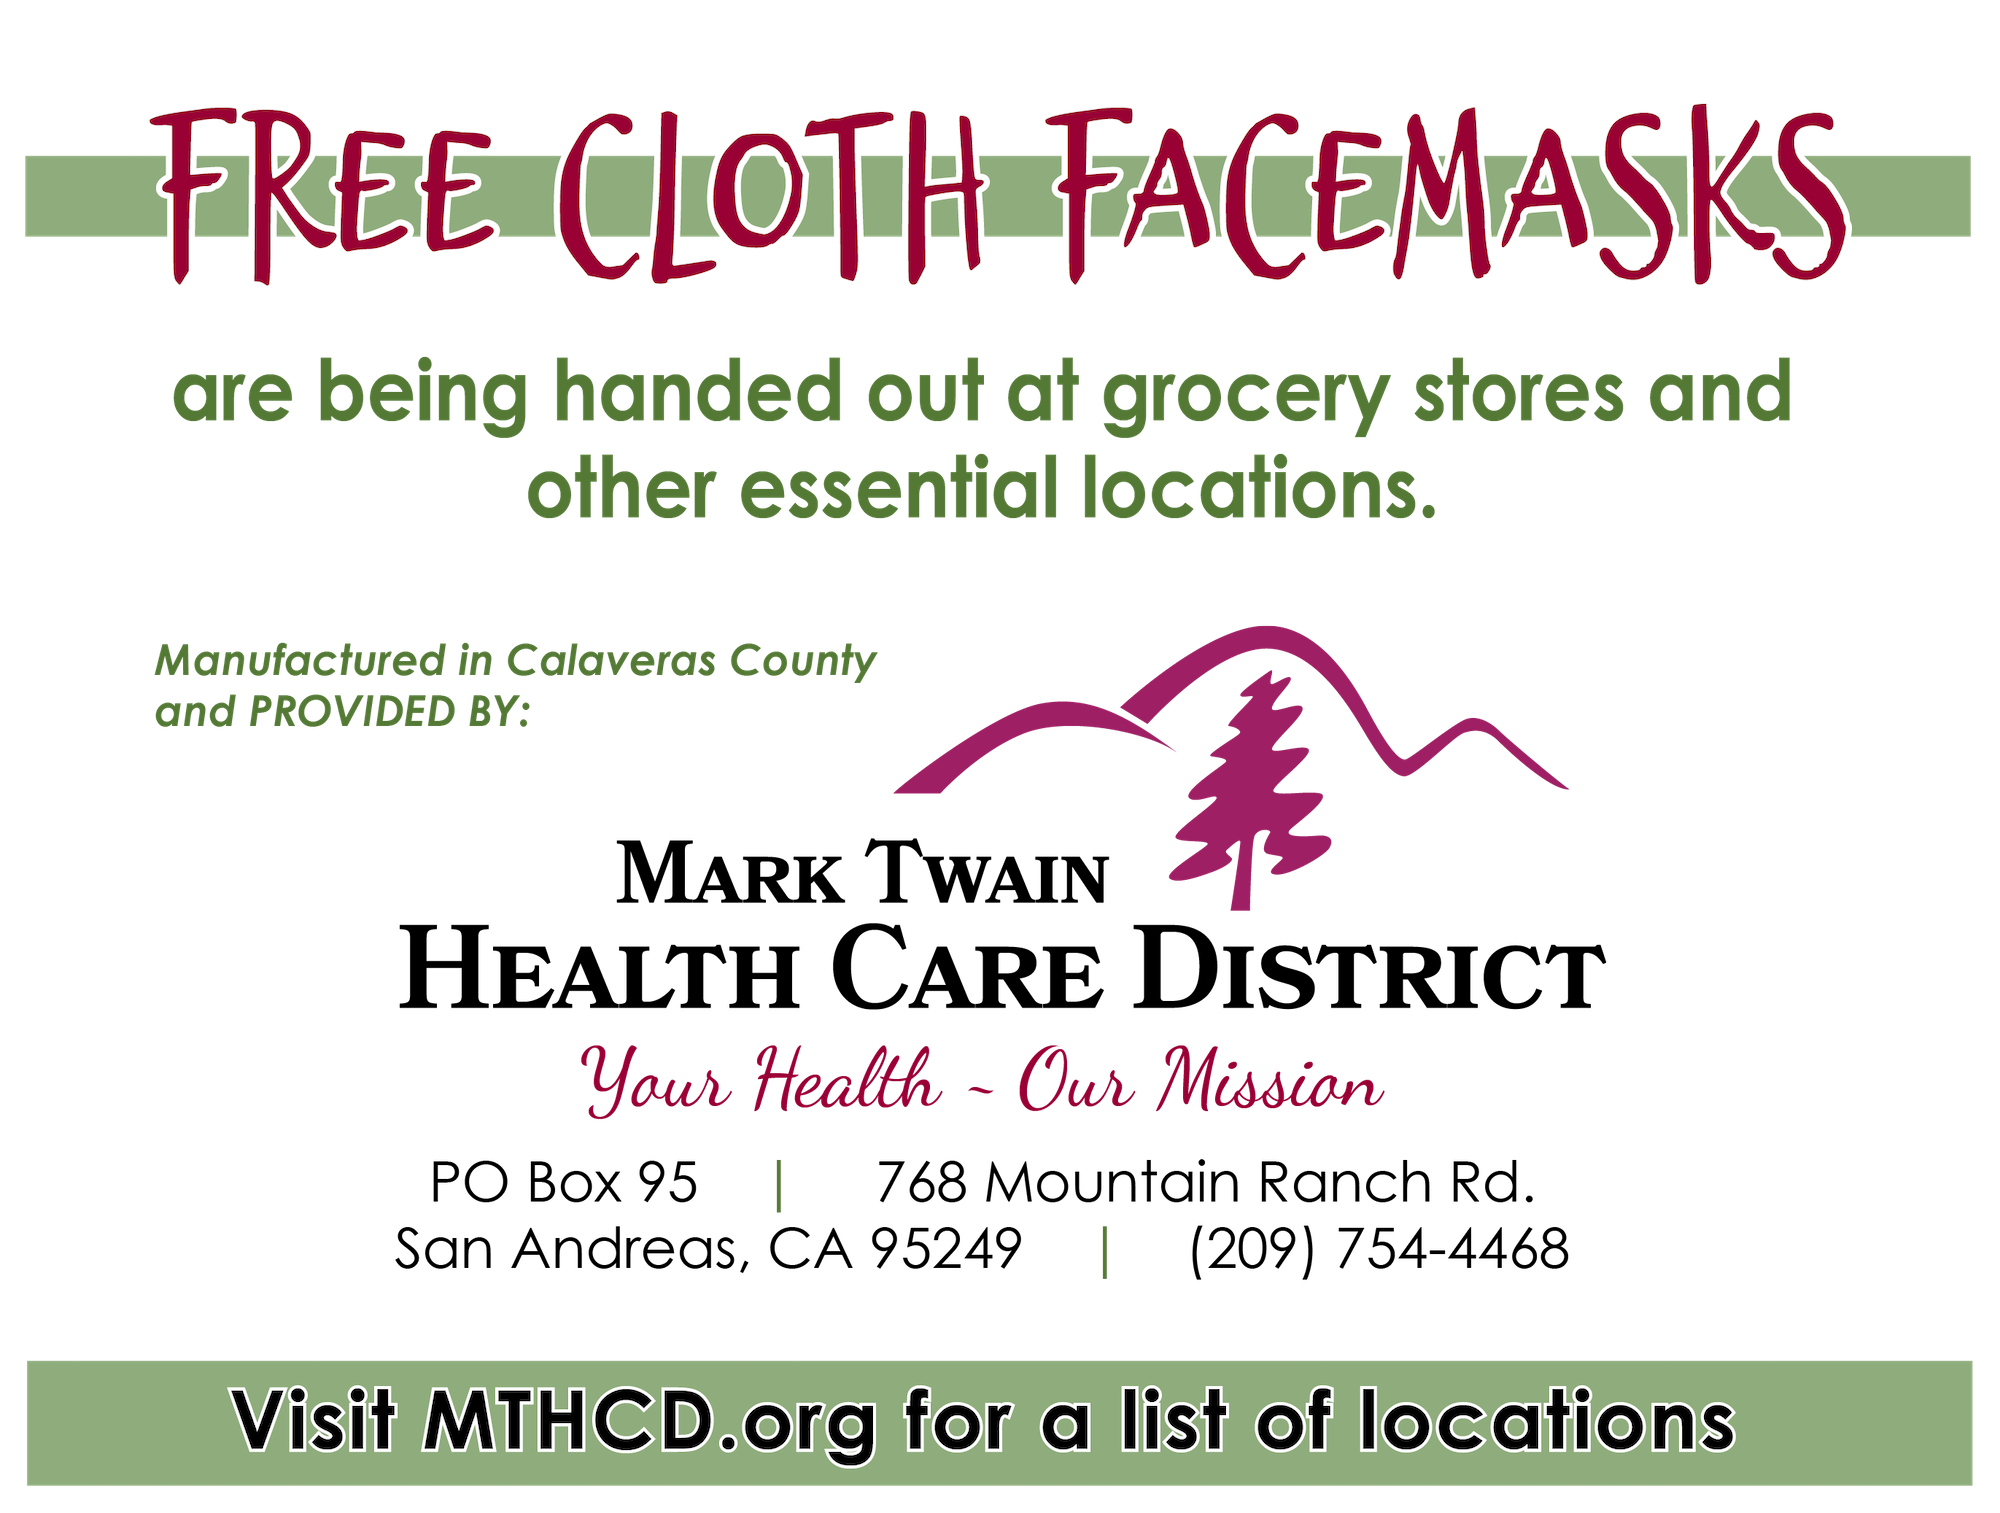 During this time of the COVID-19 pandemic, the CDC has now begun recommending that everyone wear a face covering when they go out in public. In response to this, and the fact that commercial medical masks are in limited supply and needed for medical and first responder personnel, Mark Twain Health Care District has commissioned the local manufacturing of 2000 masks to be distributed free of charge to anyone who would like one. These masks (pictured) are available at local markets in the communities of Calaveras County. A full list of the participating markets can be found online at MTHCD.org. For more information, call Peggy at 754-4468.